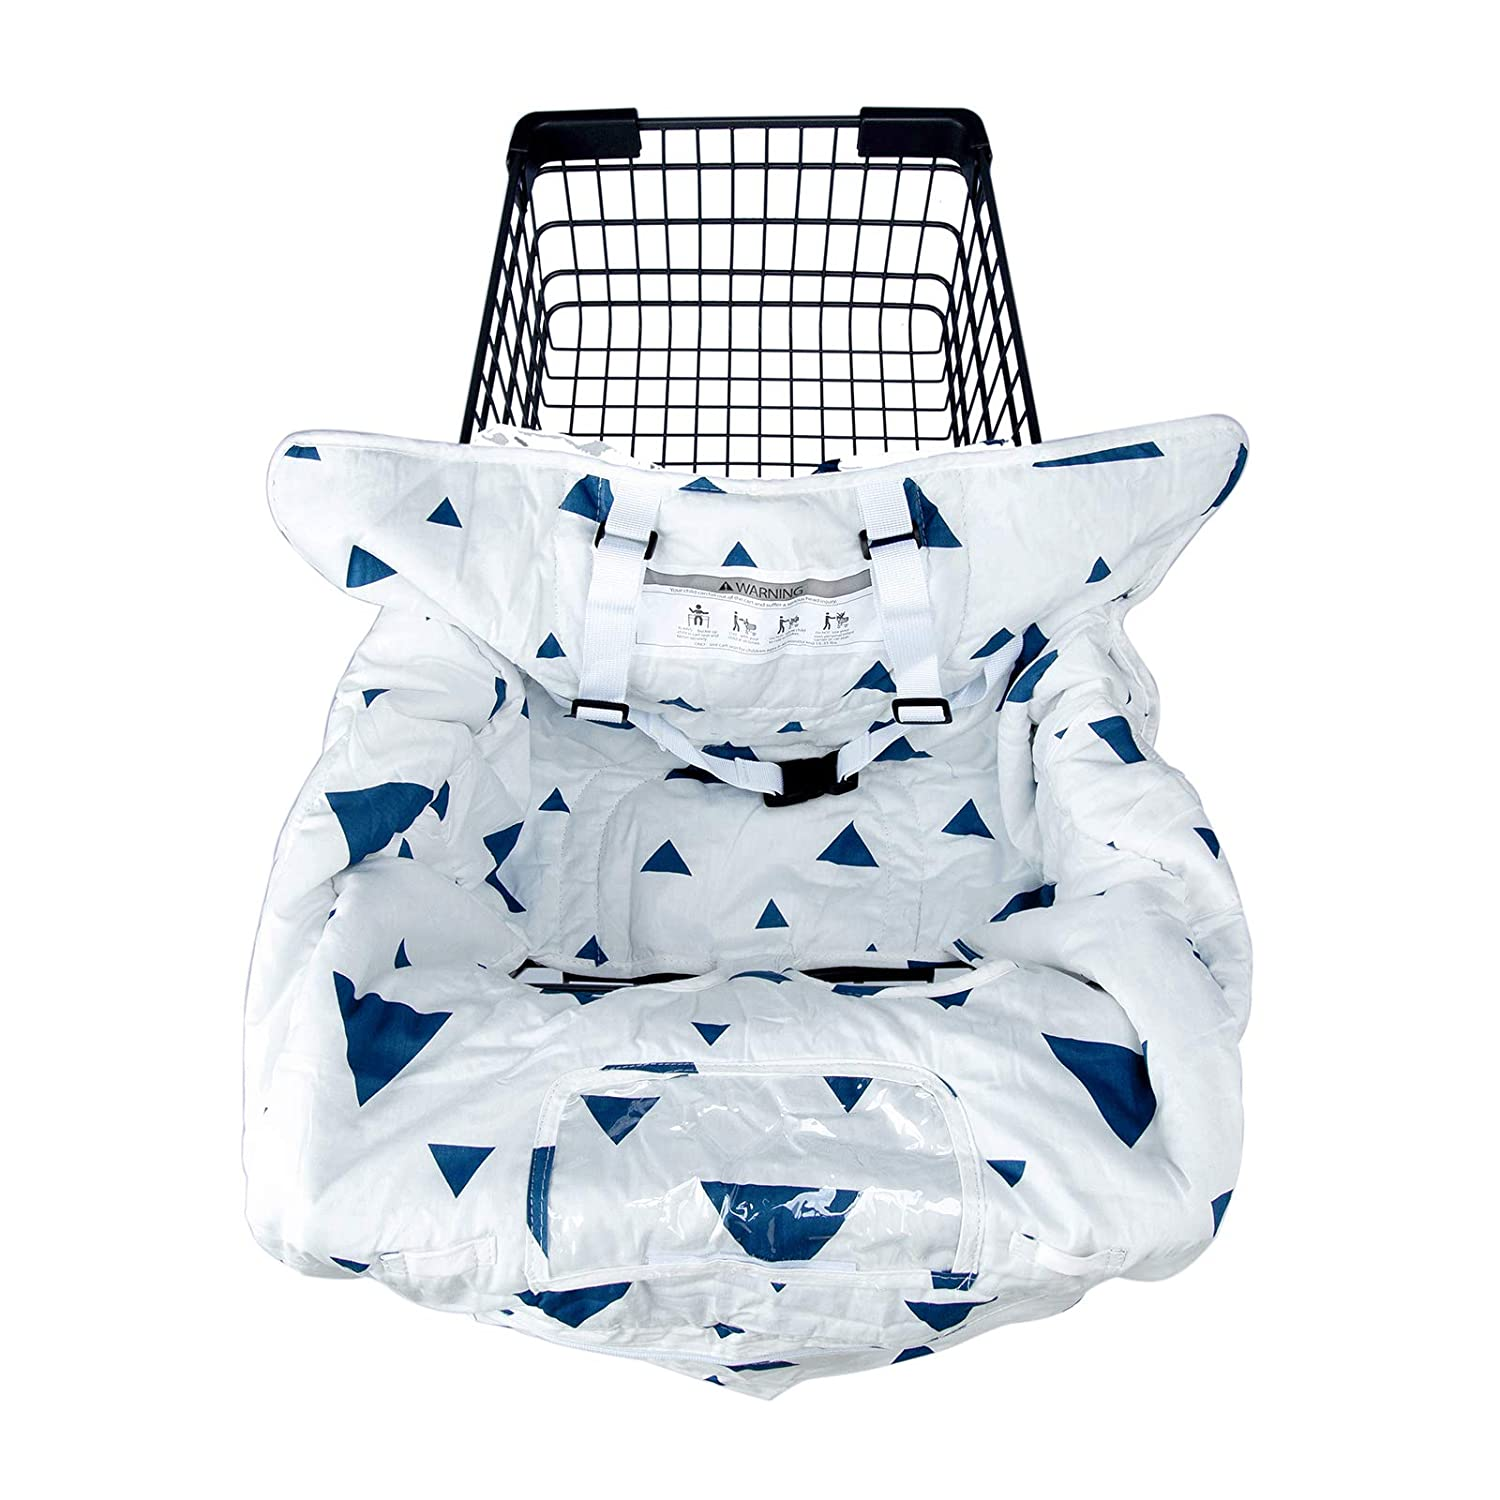 2-in-1 Shopping Cart Cover for Baby, Machine Washable Cotton High Chair Cover, Large Fits Most Shopping carts, with 6.5